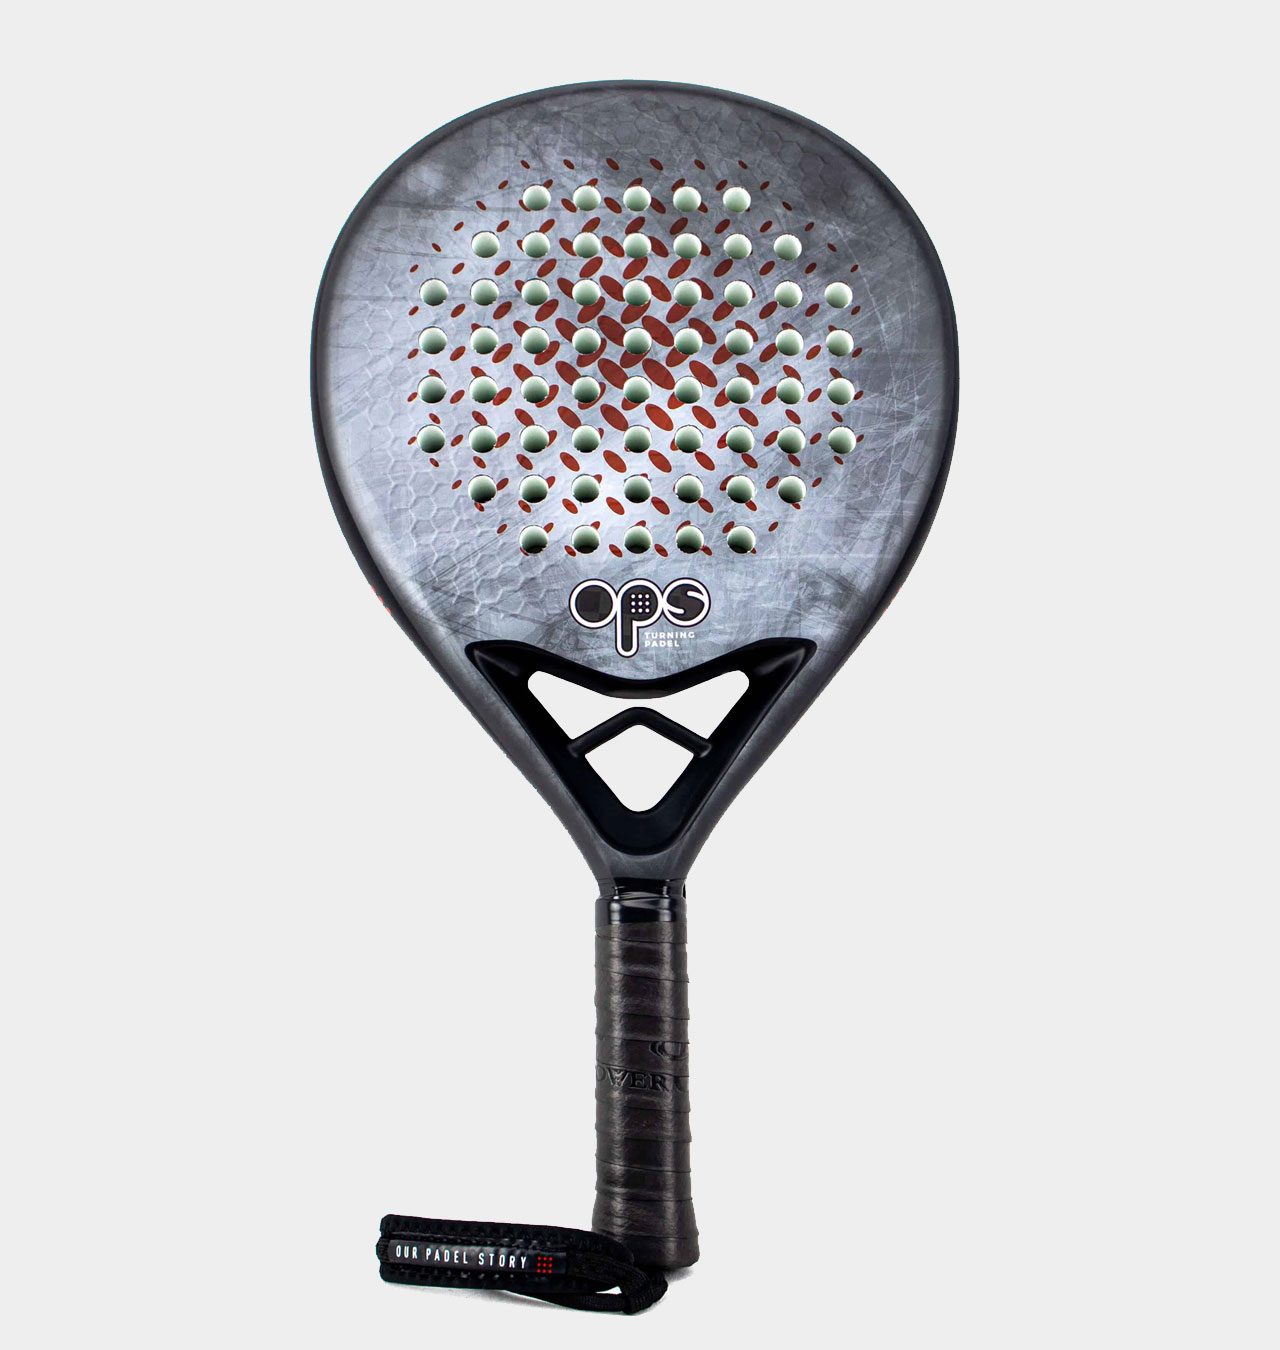 Our Padel Story HEX12K padelracket